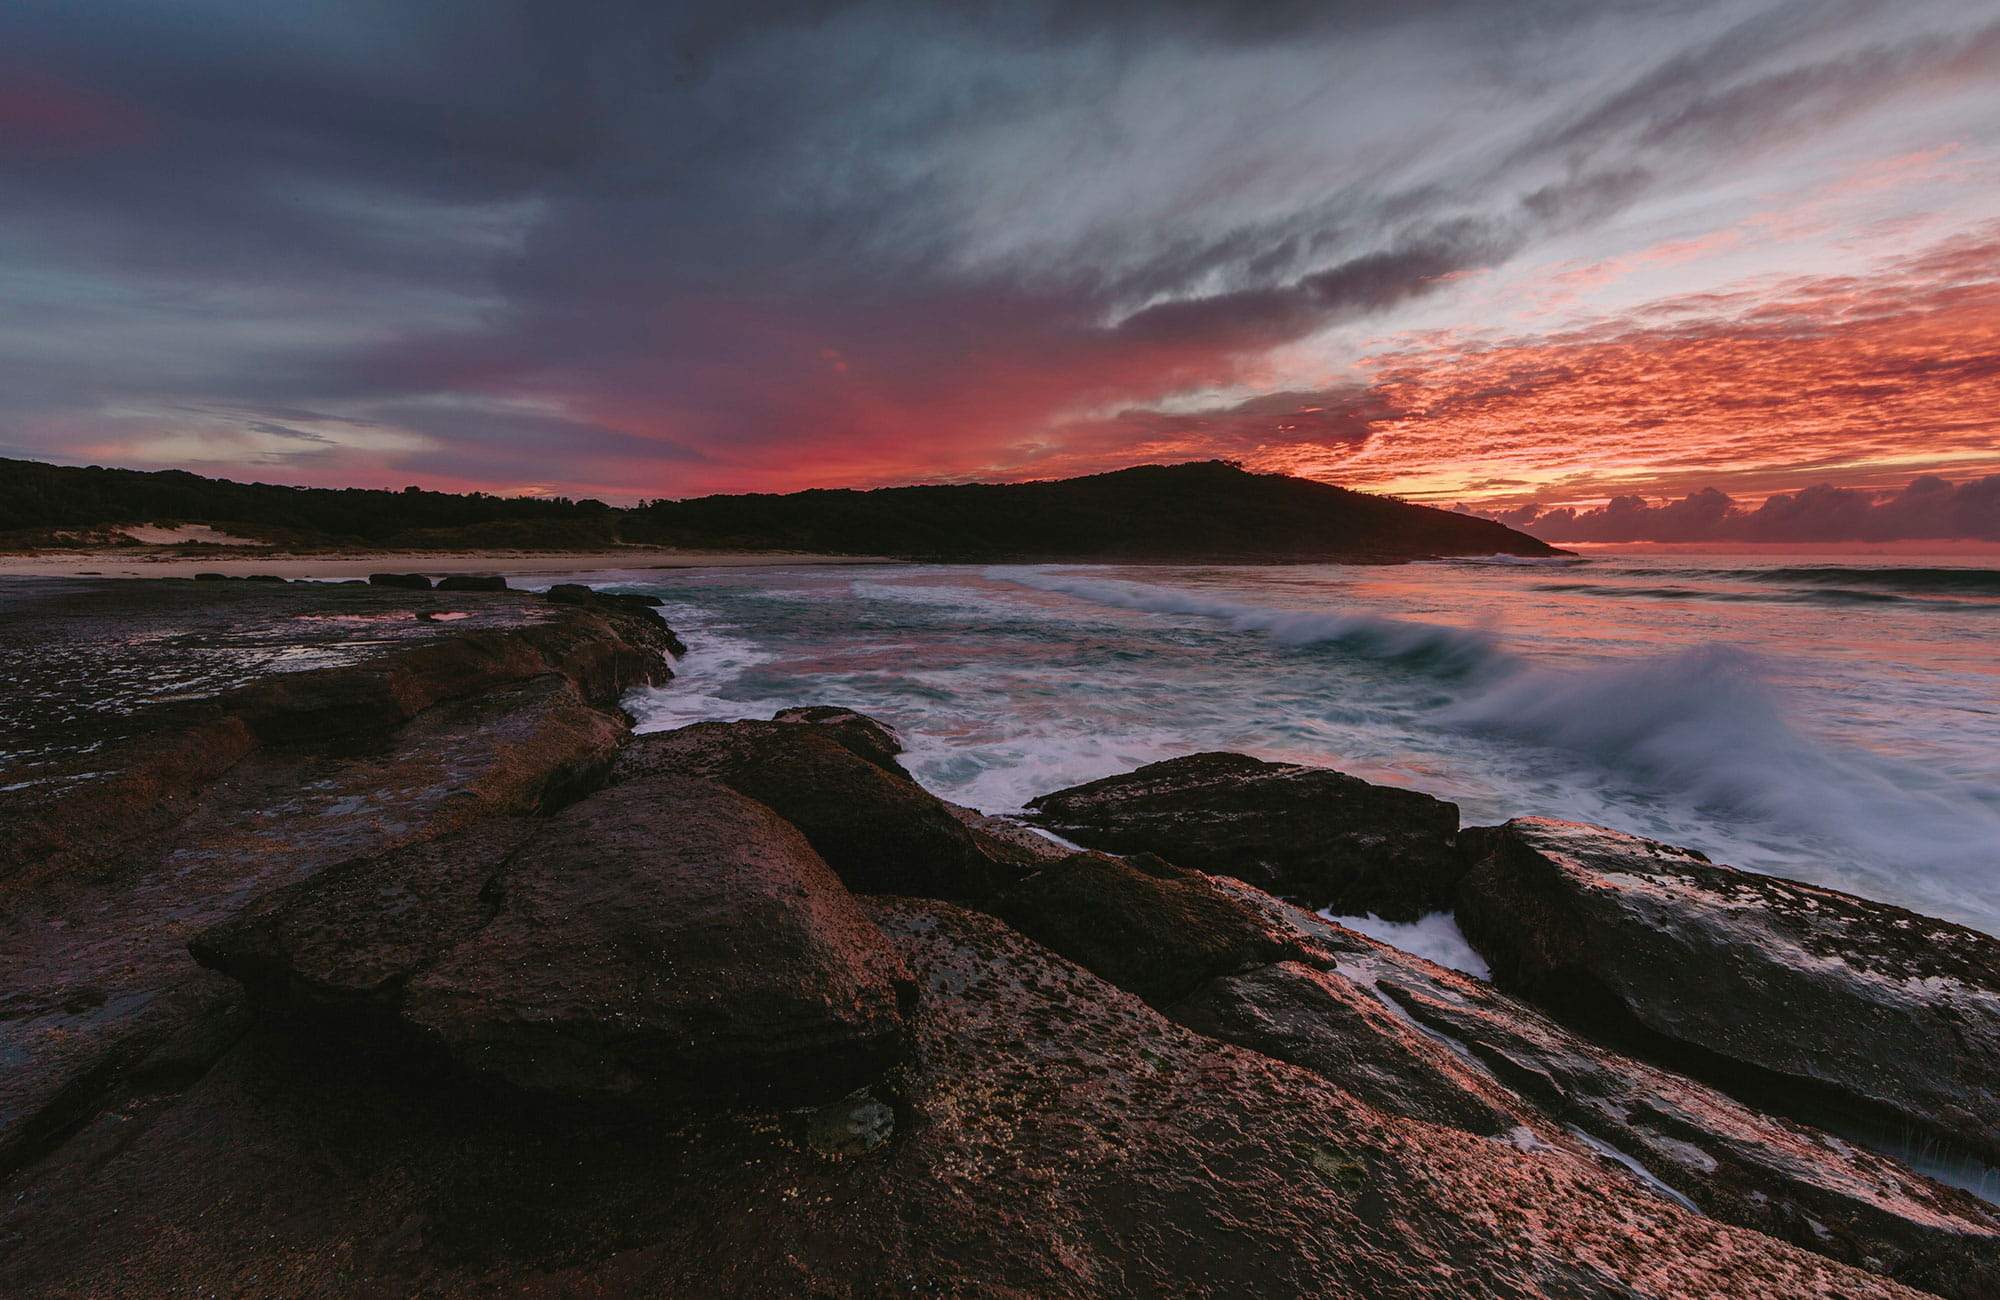 Sun setting across Pretty beach, Murramarang National Park. Photo: D Finnegan/OEH